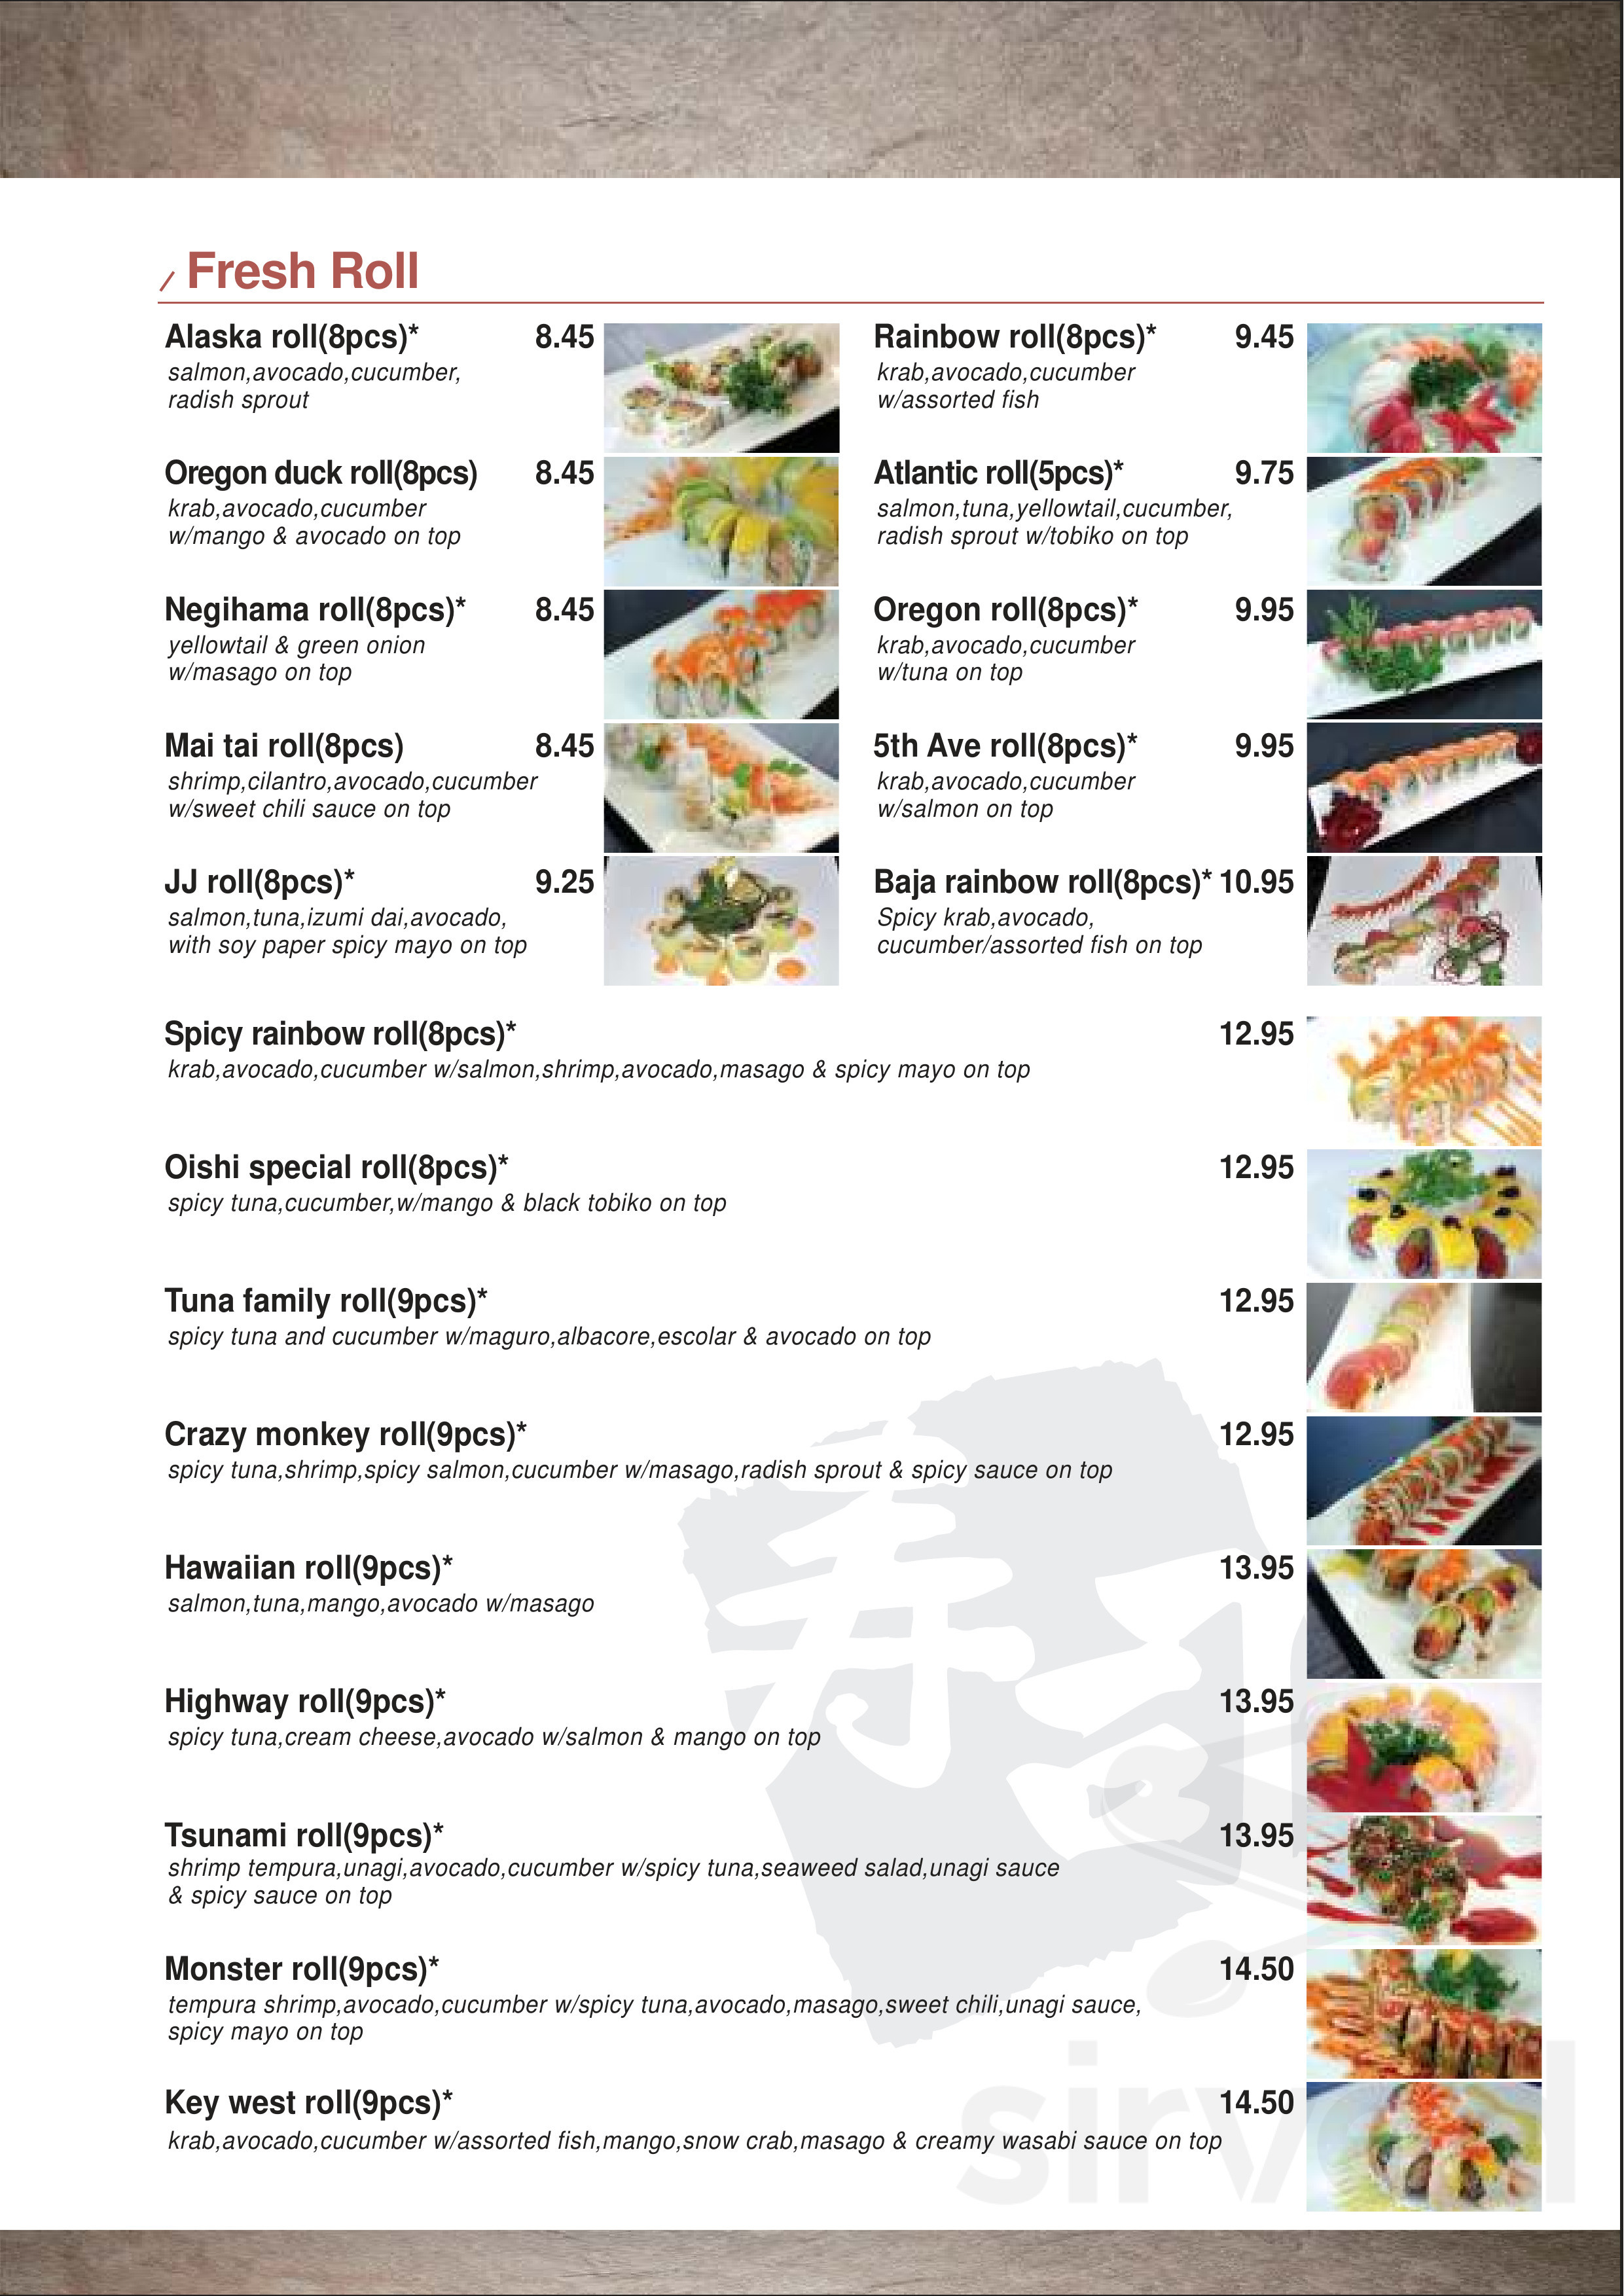 Sushi Station Japanese Restaurant Menu In Eugene Oregon The fish is fresh, the service is amiable and the prices are more than fare. sushi station japanese restaurant menu